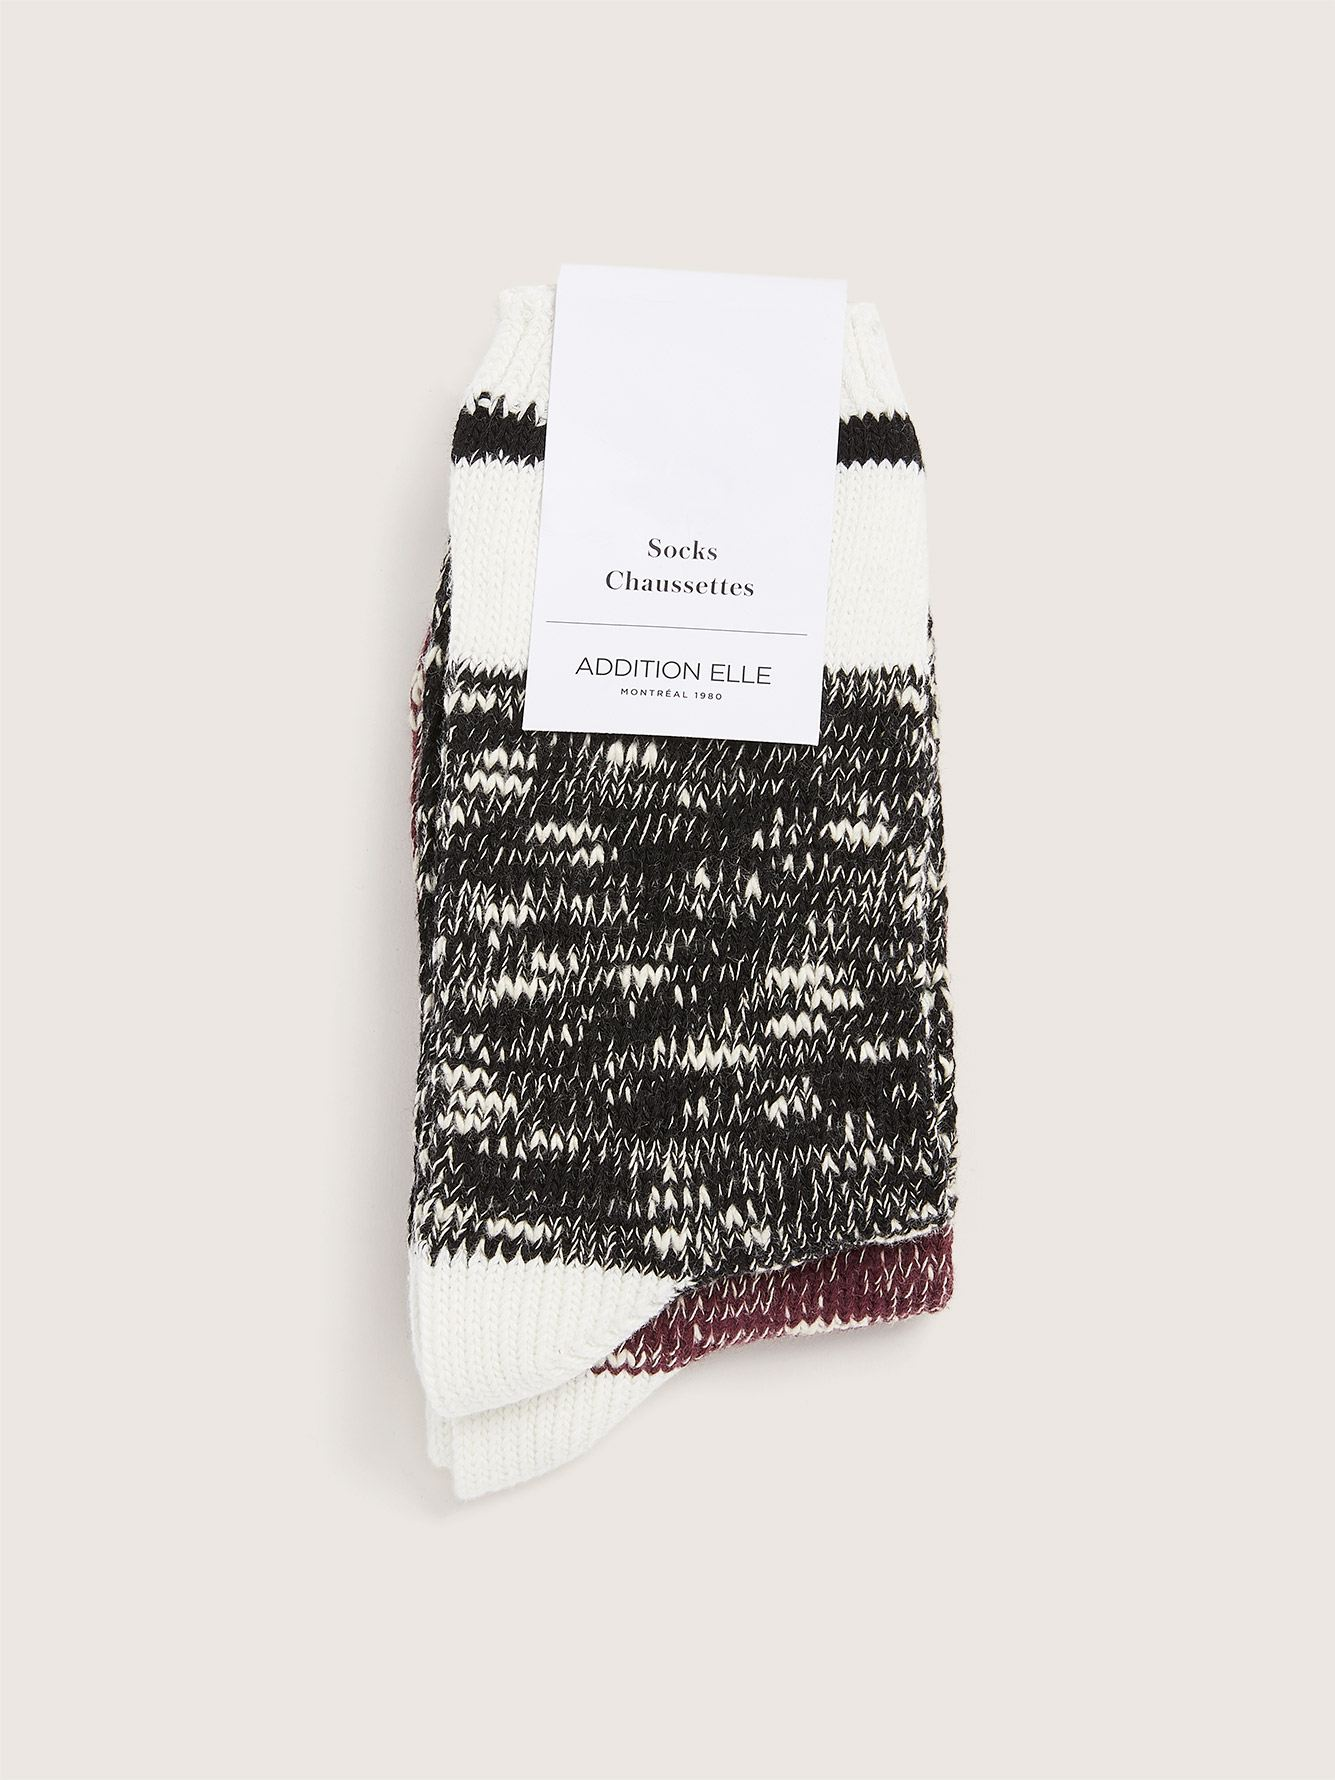 2 Pairs of Knit Work Socks - Addition Elle